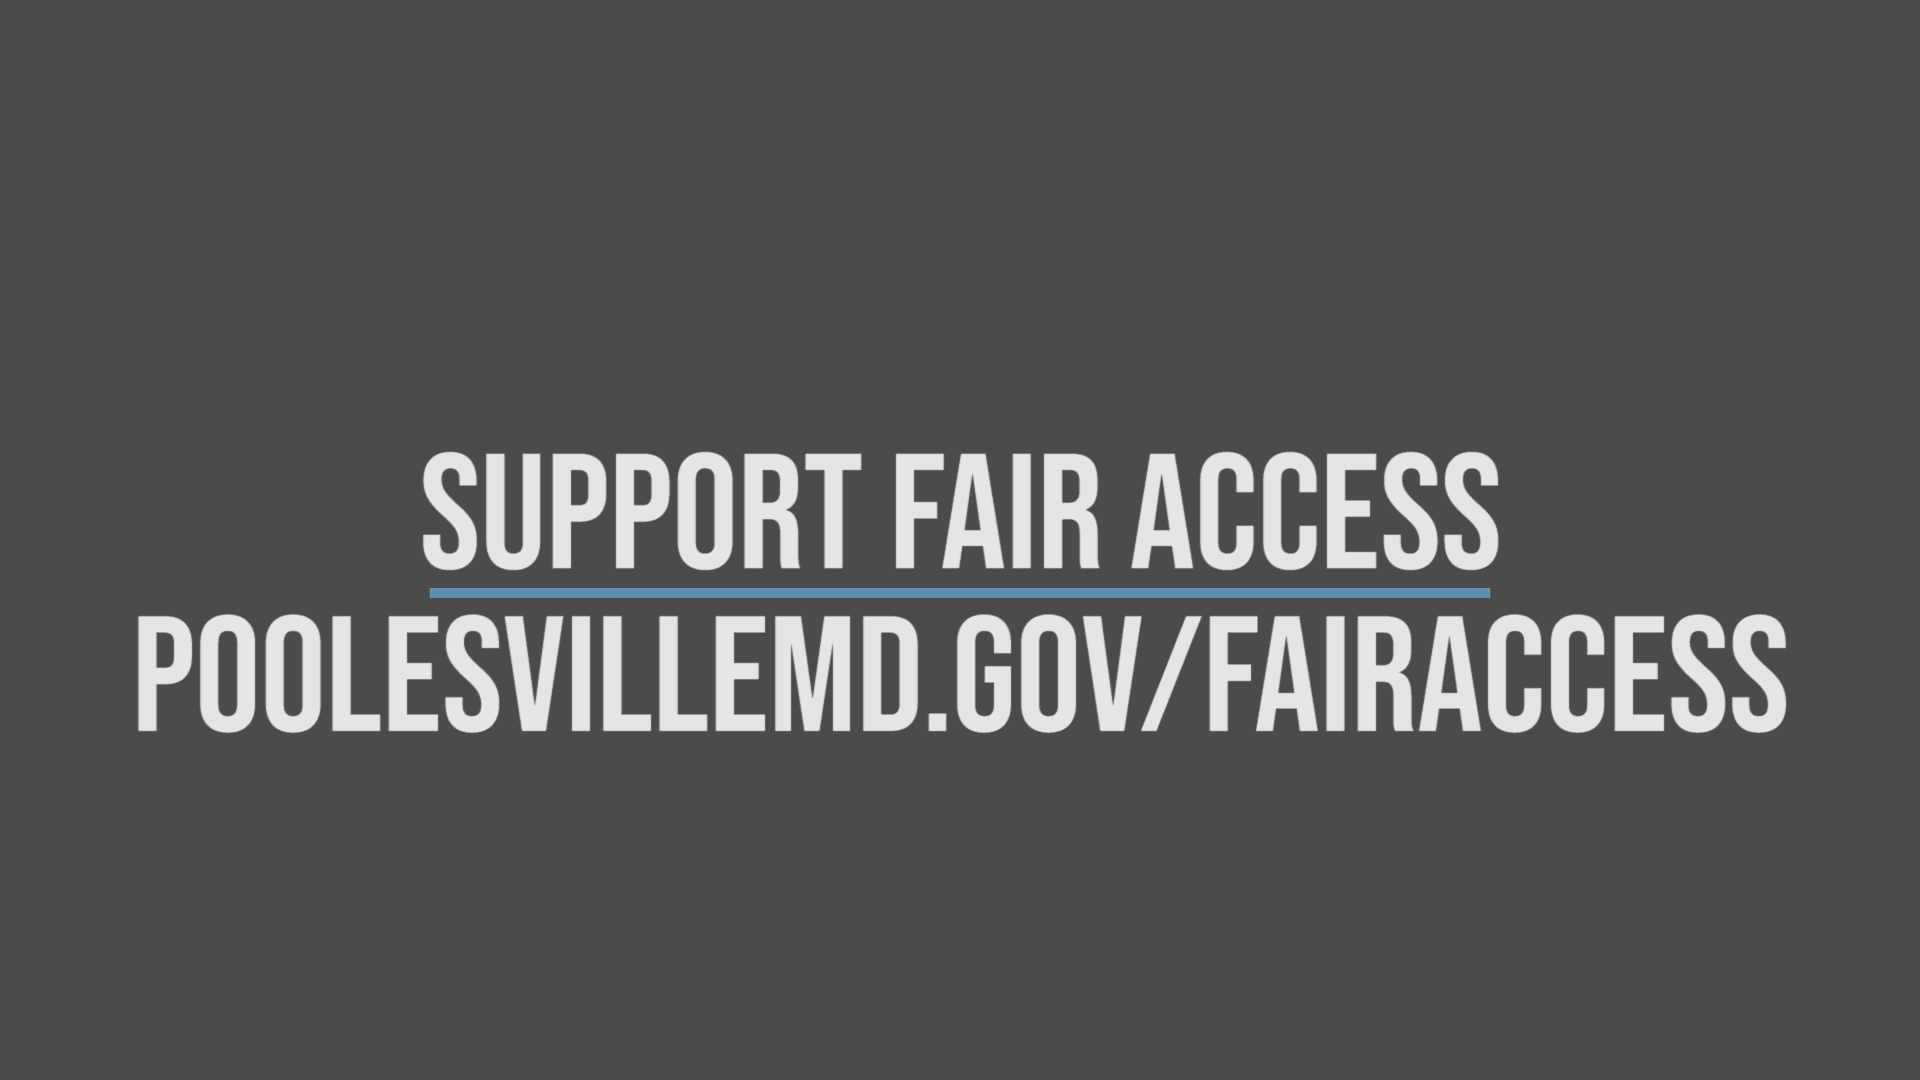 Support Fair Access